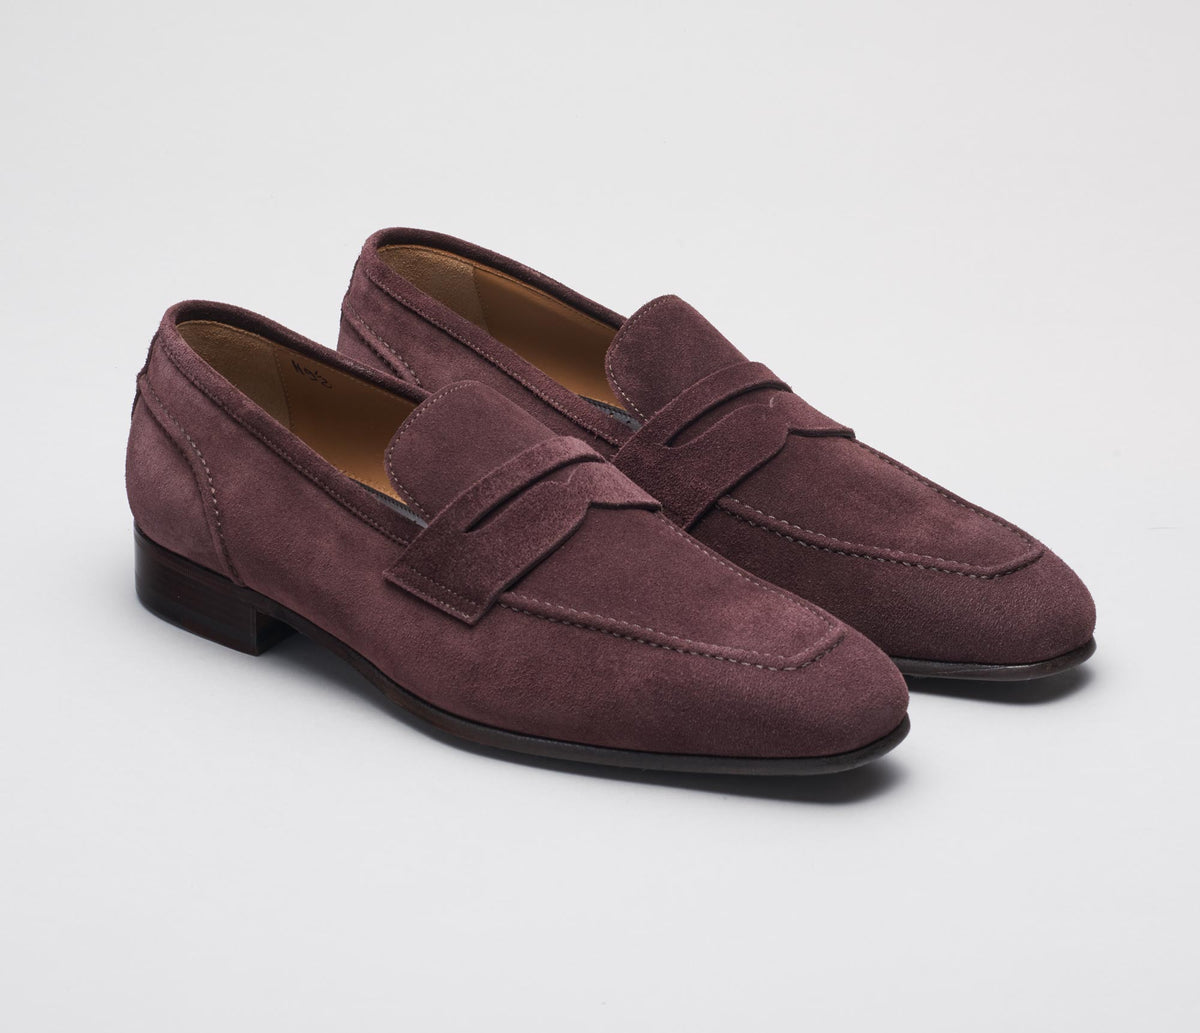 Padua Suede Loafer in Anima